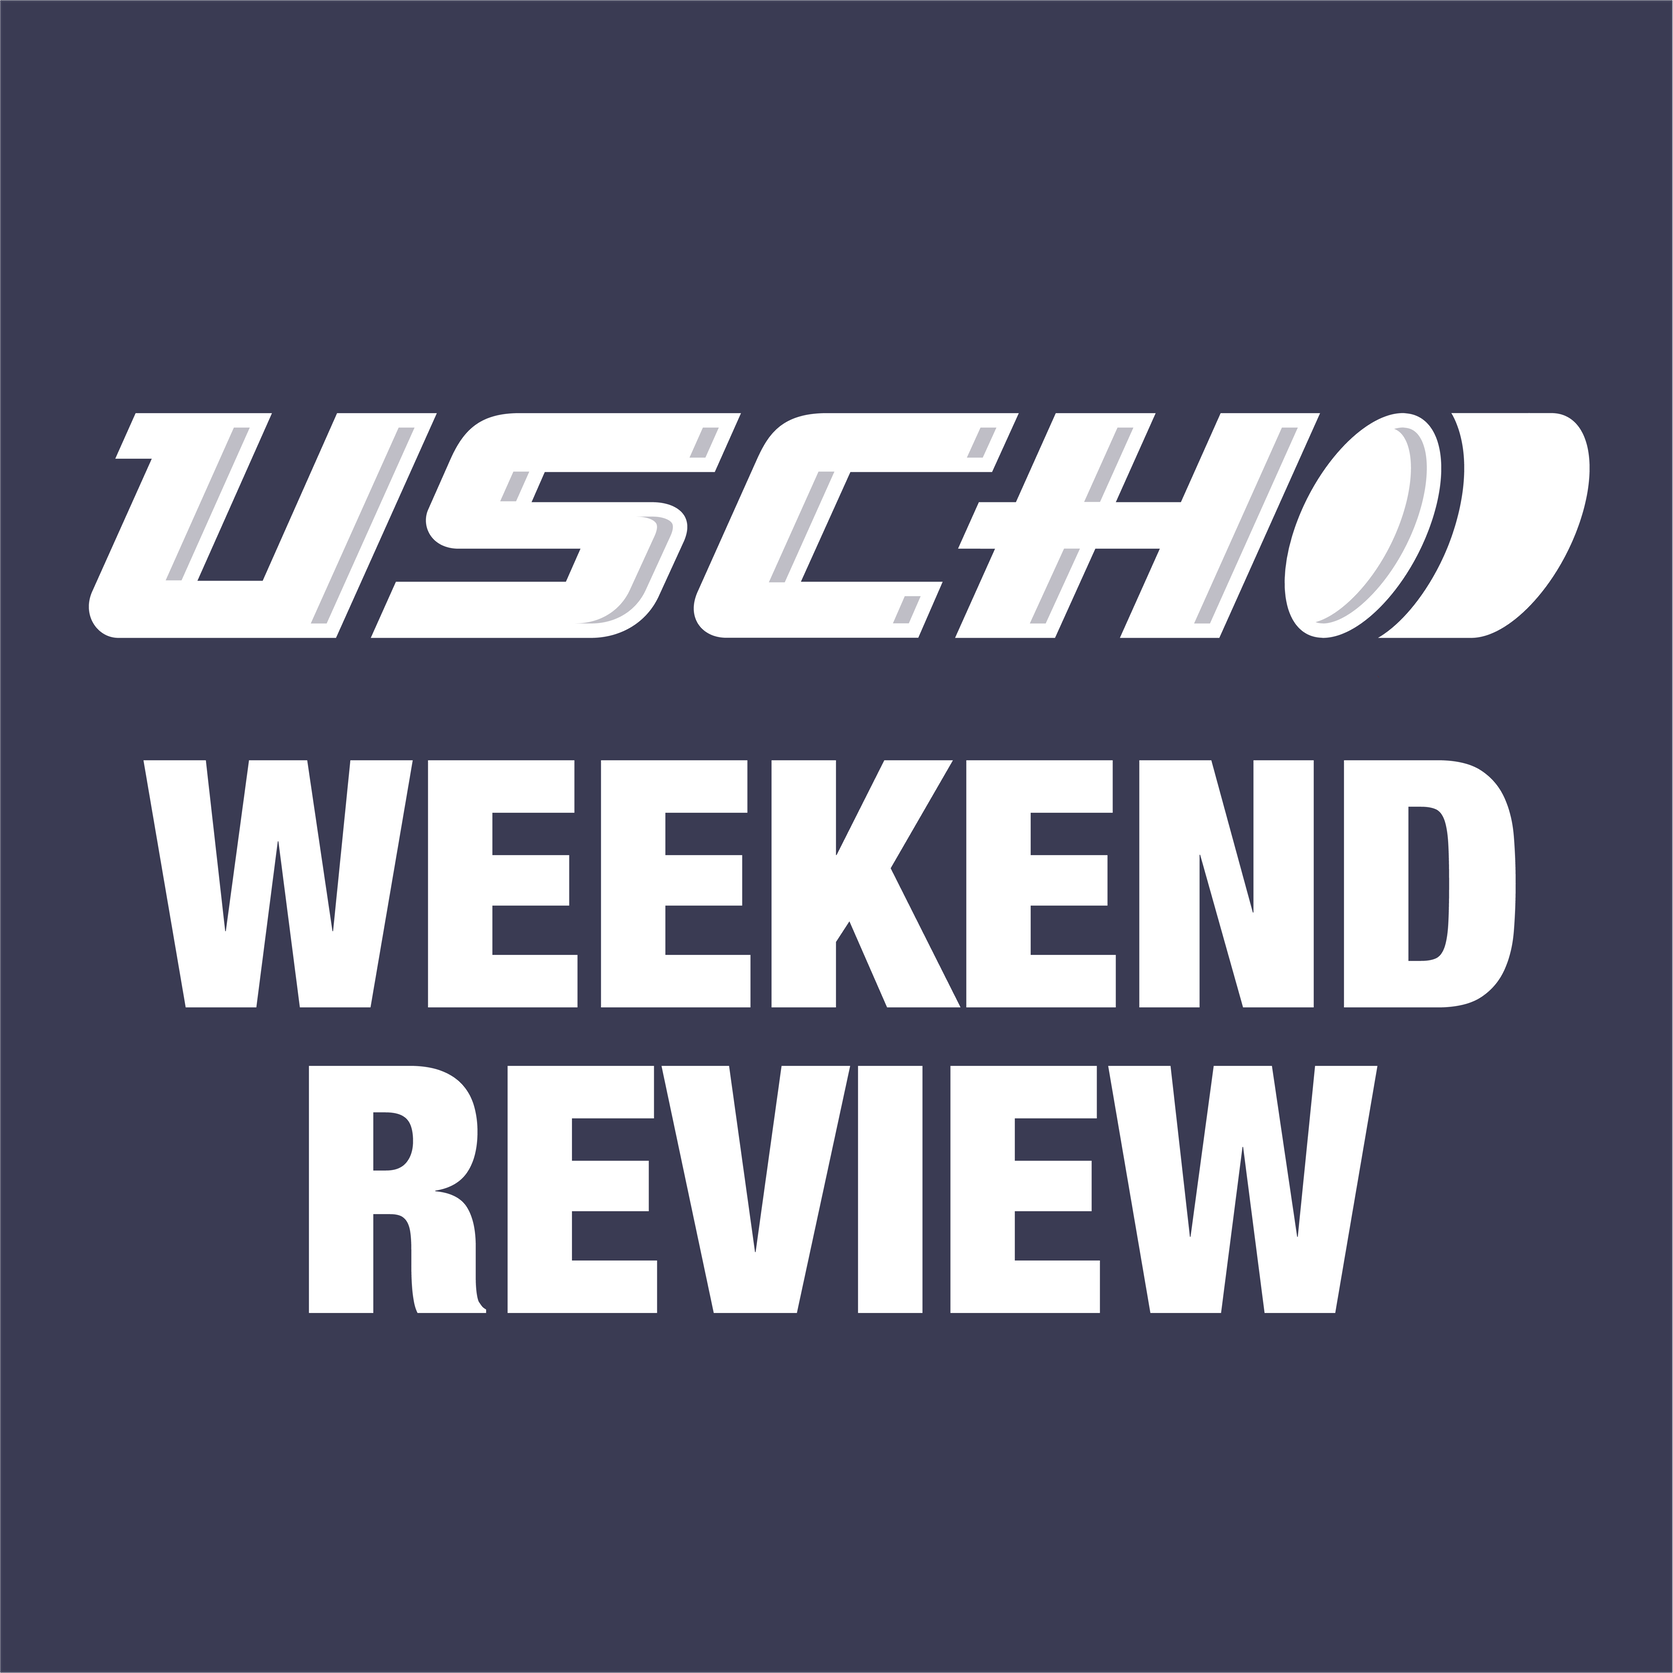 Some point splits but no losses for top five teams: Weekend Review podcast Season 2 Episode 15